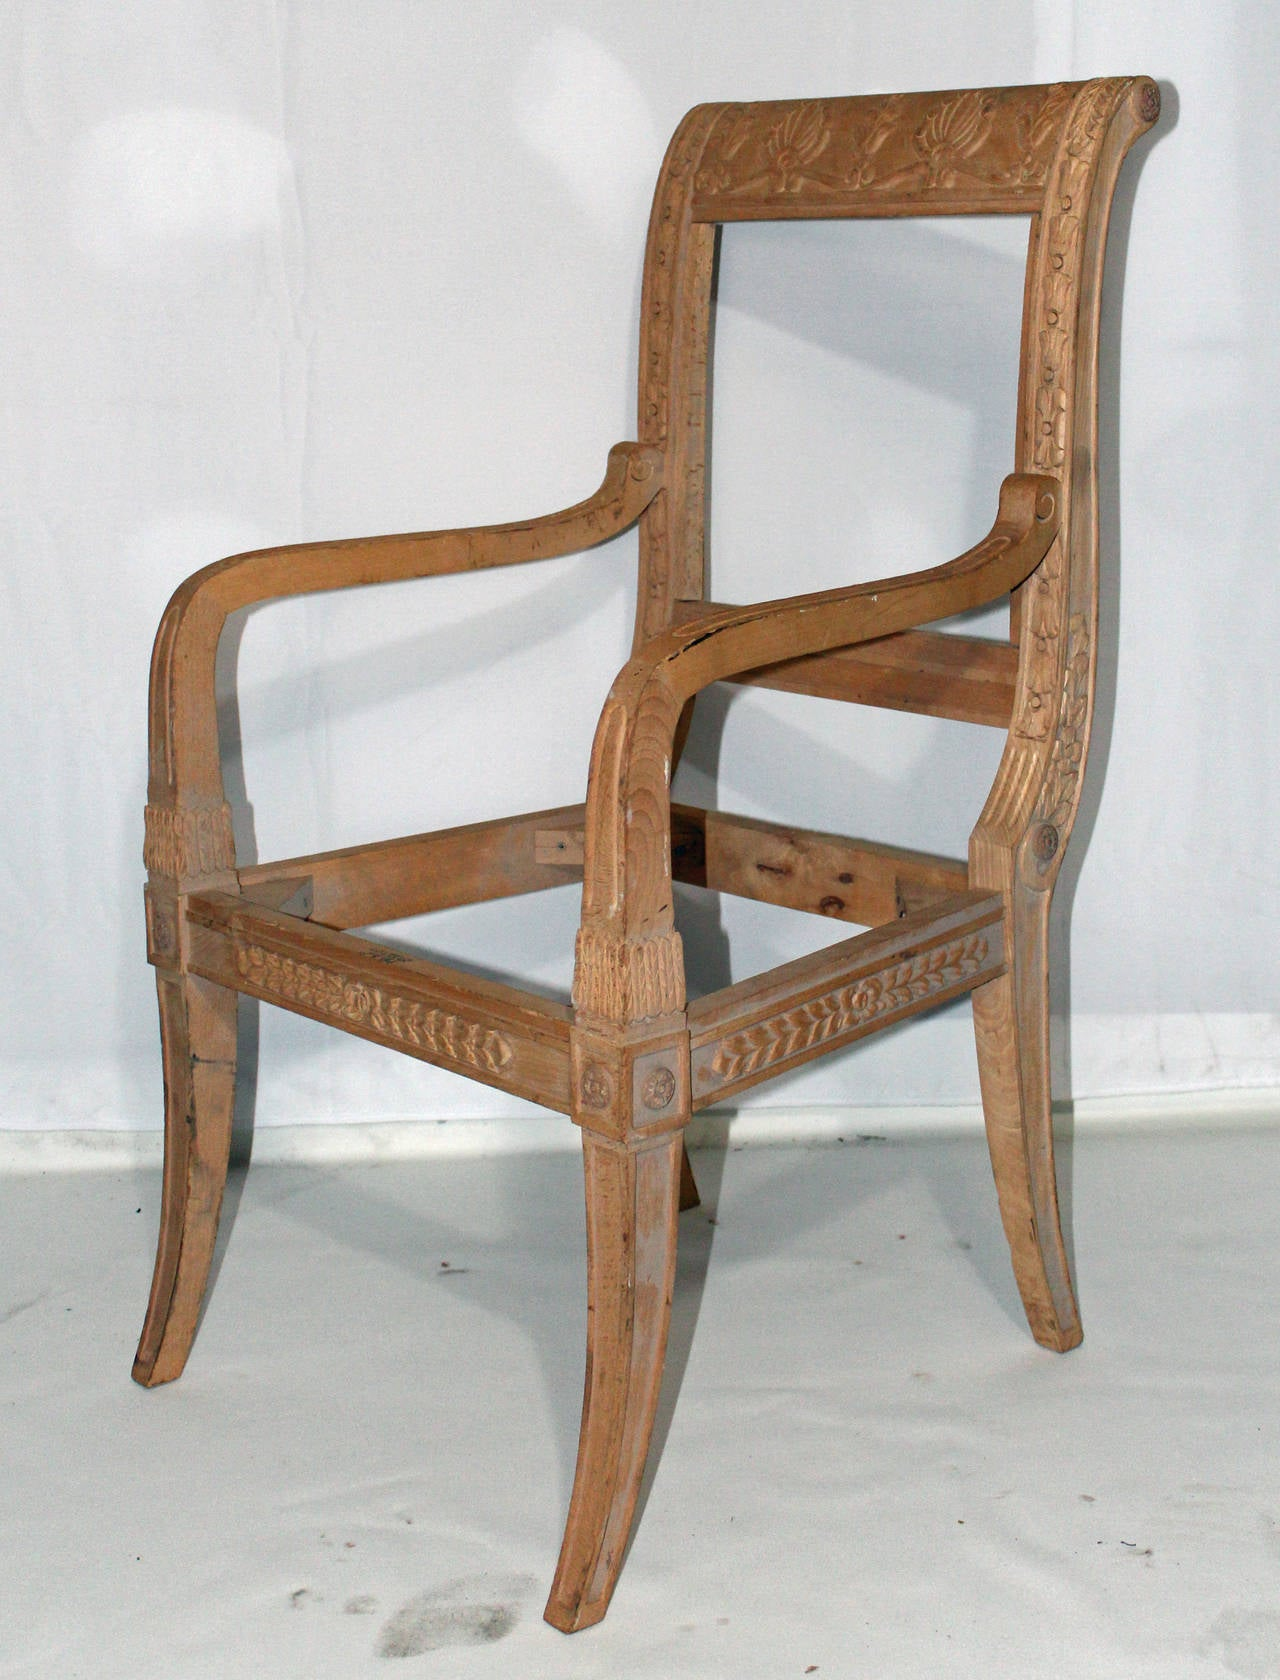 Nicely Carved And Detailed Dining Chair Frames From The